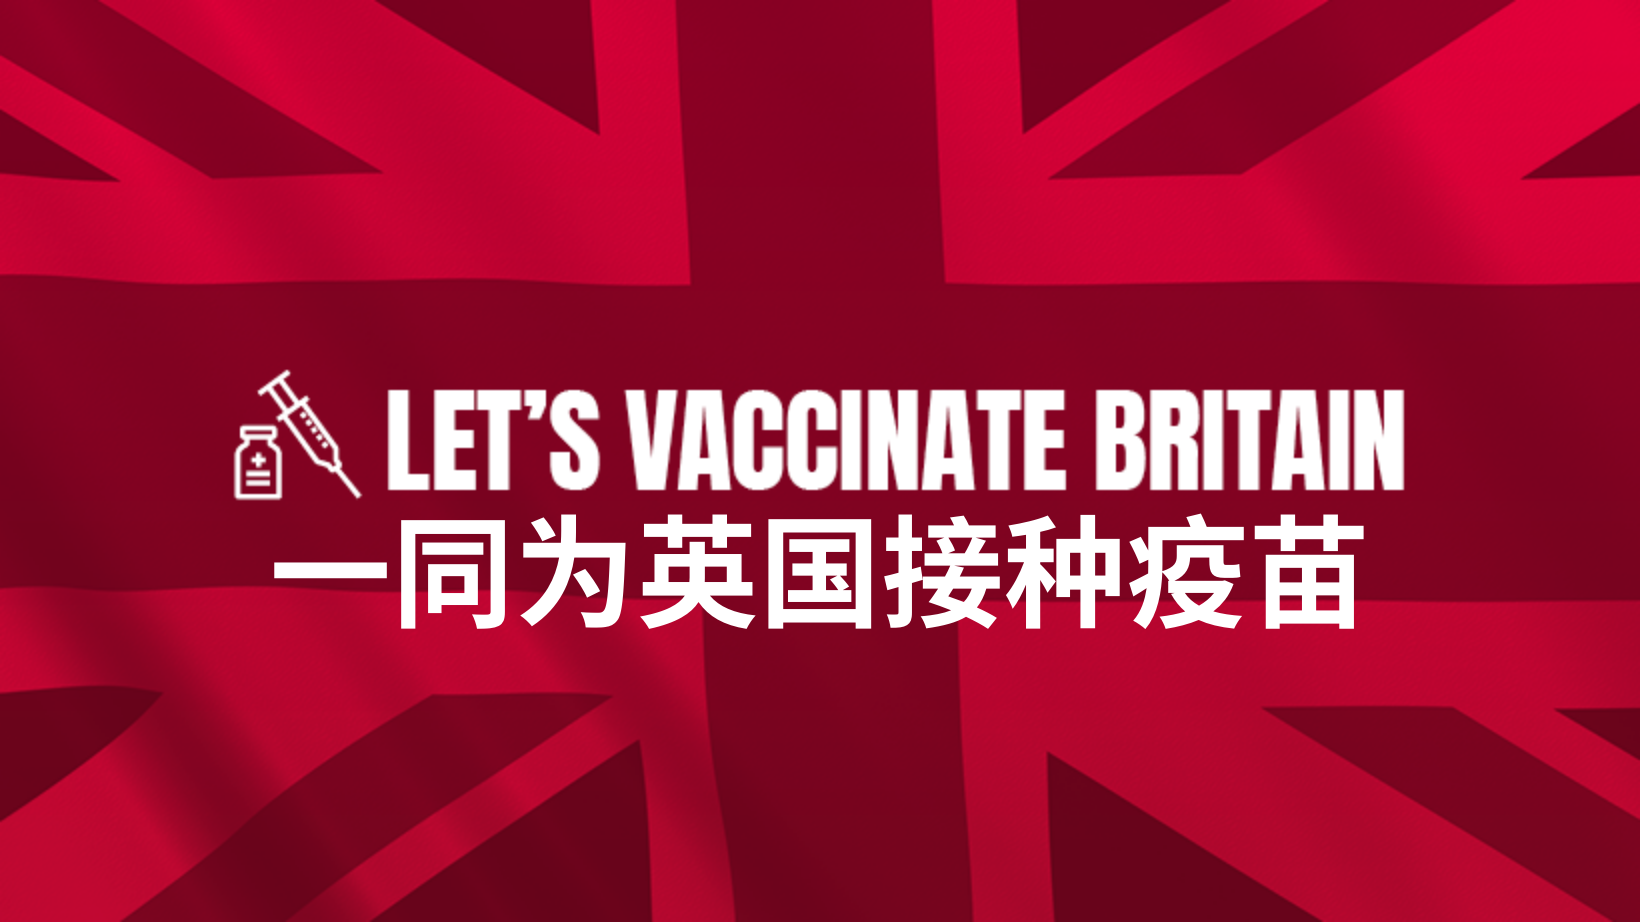 Let's_vaccinate_Britain_04__Simplified_Chinese_.png